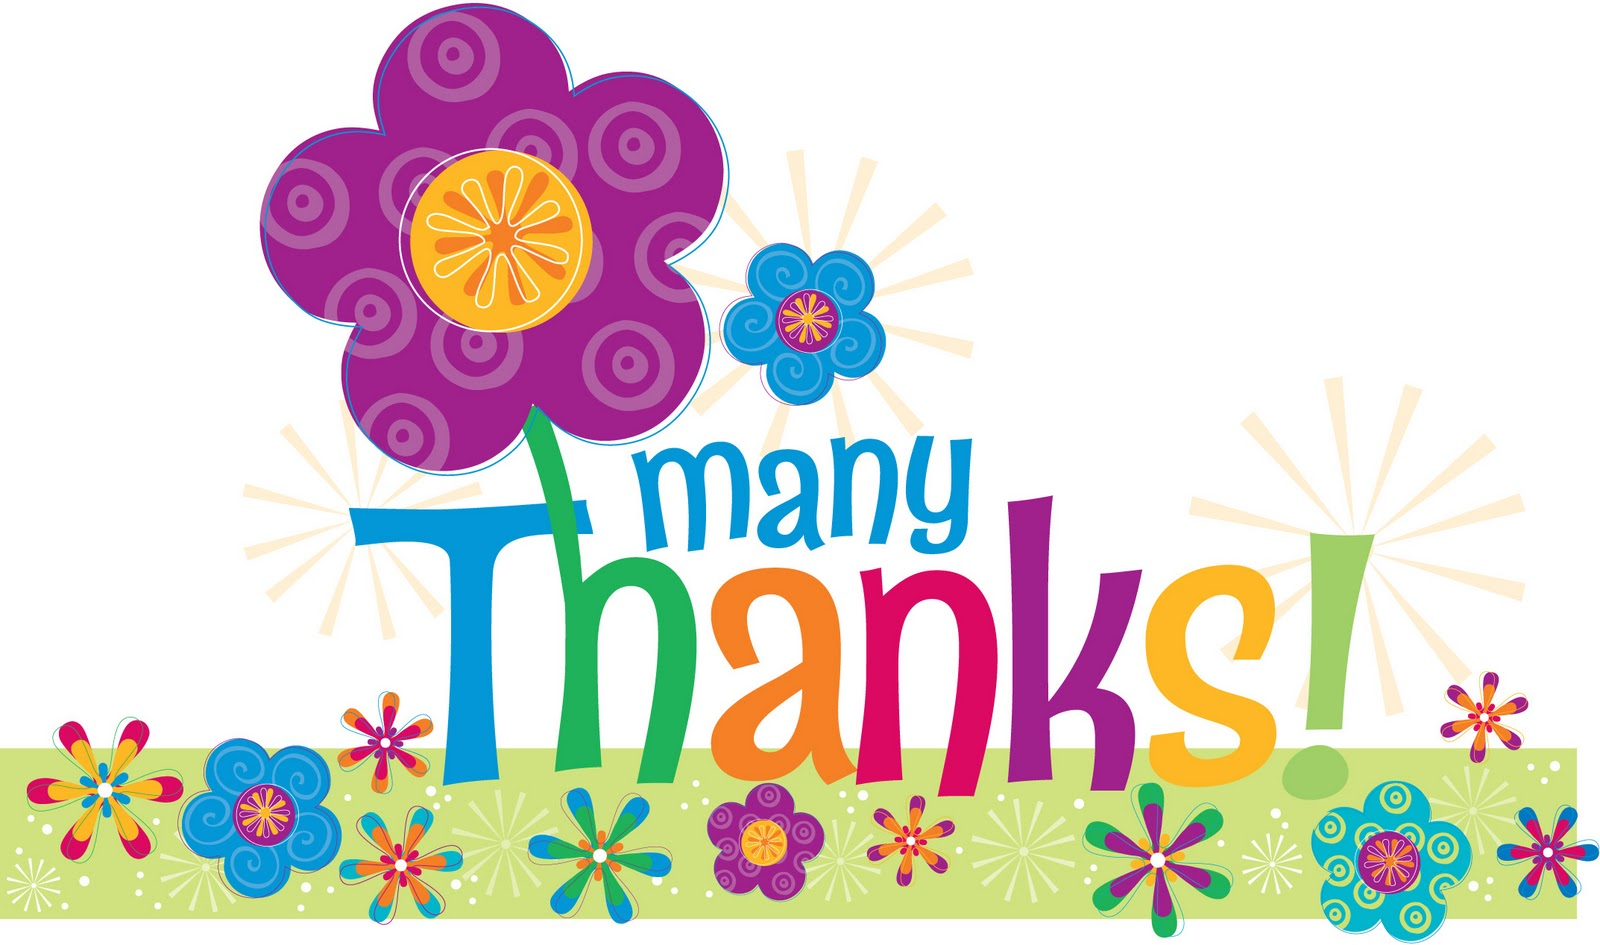 Thank You For Lunch Clipart-Thank You For Lunch Clipart-12